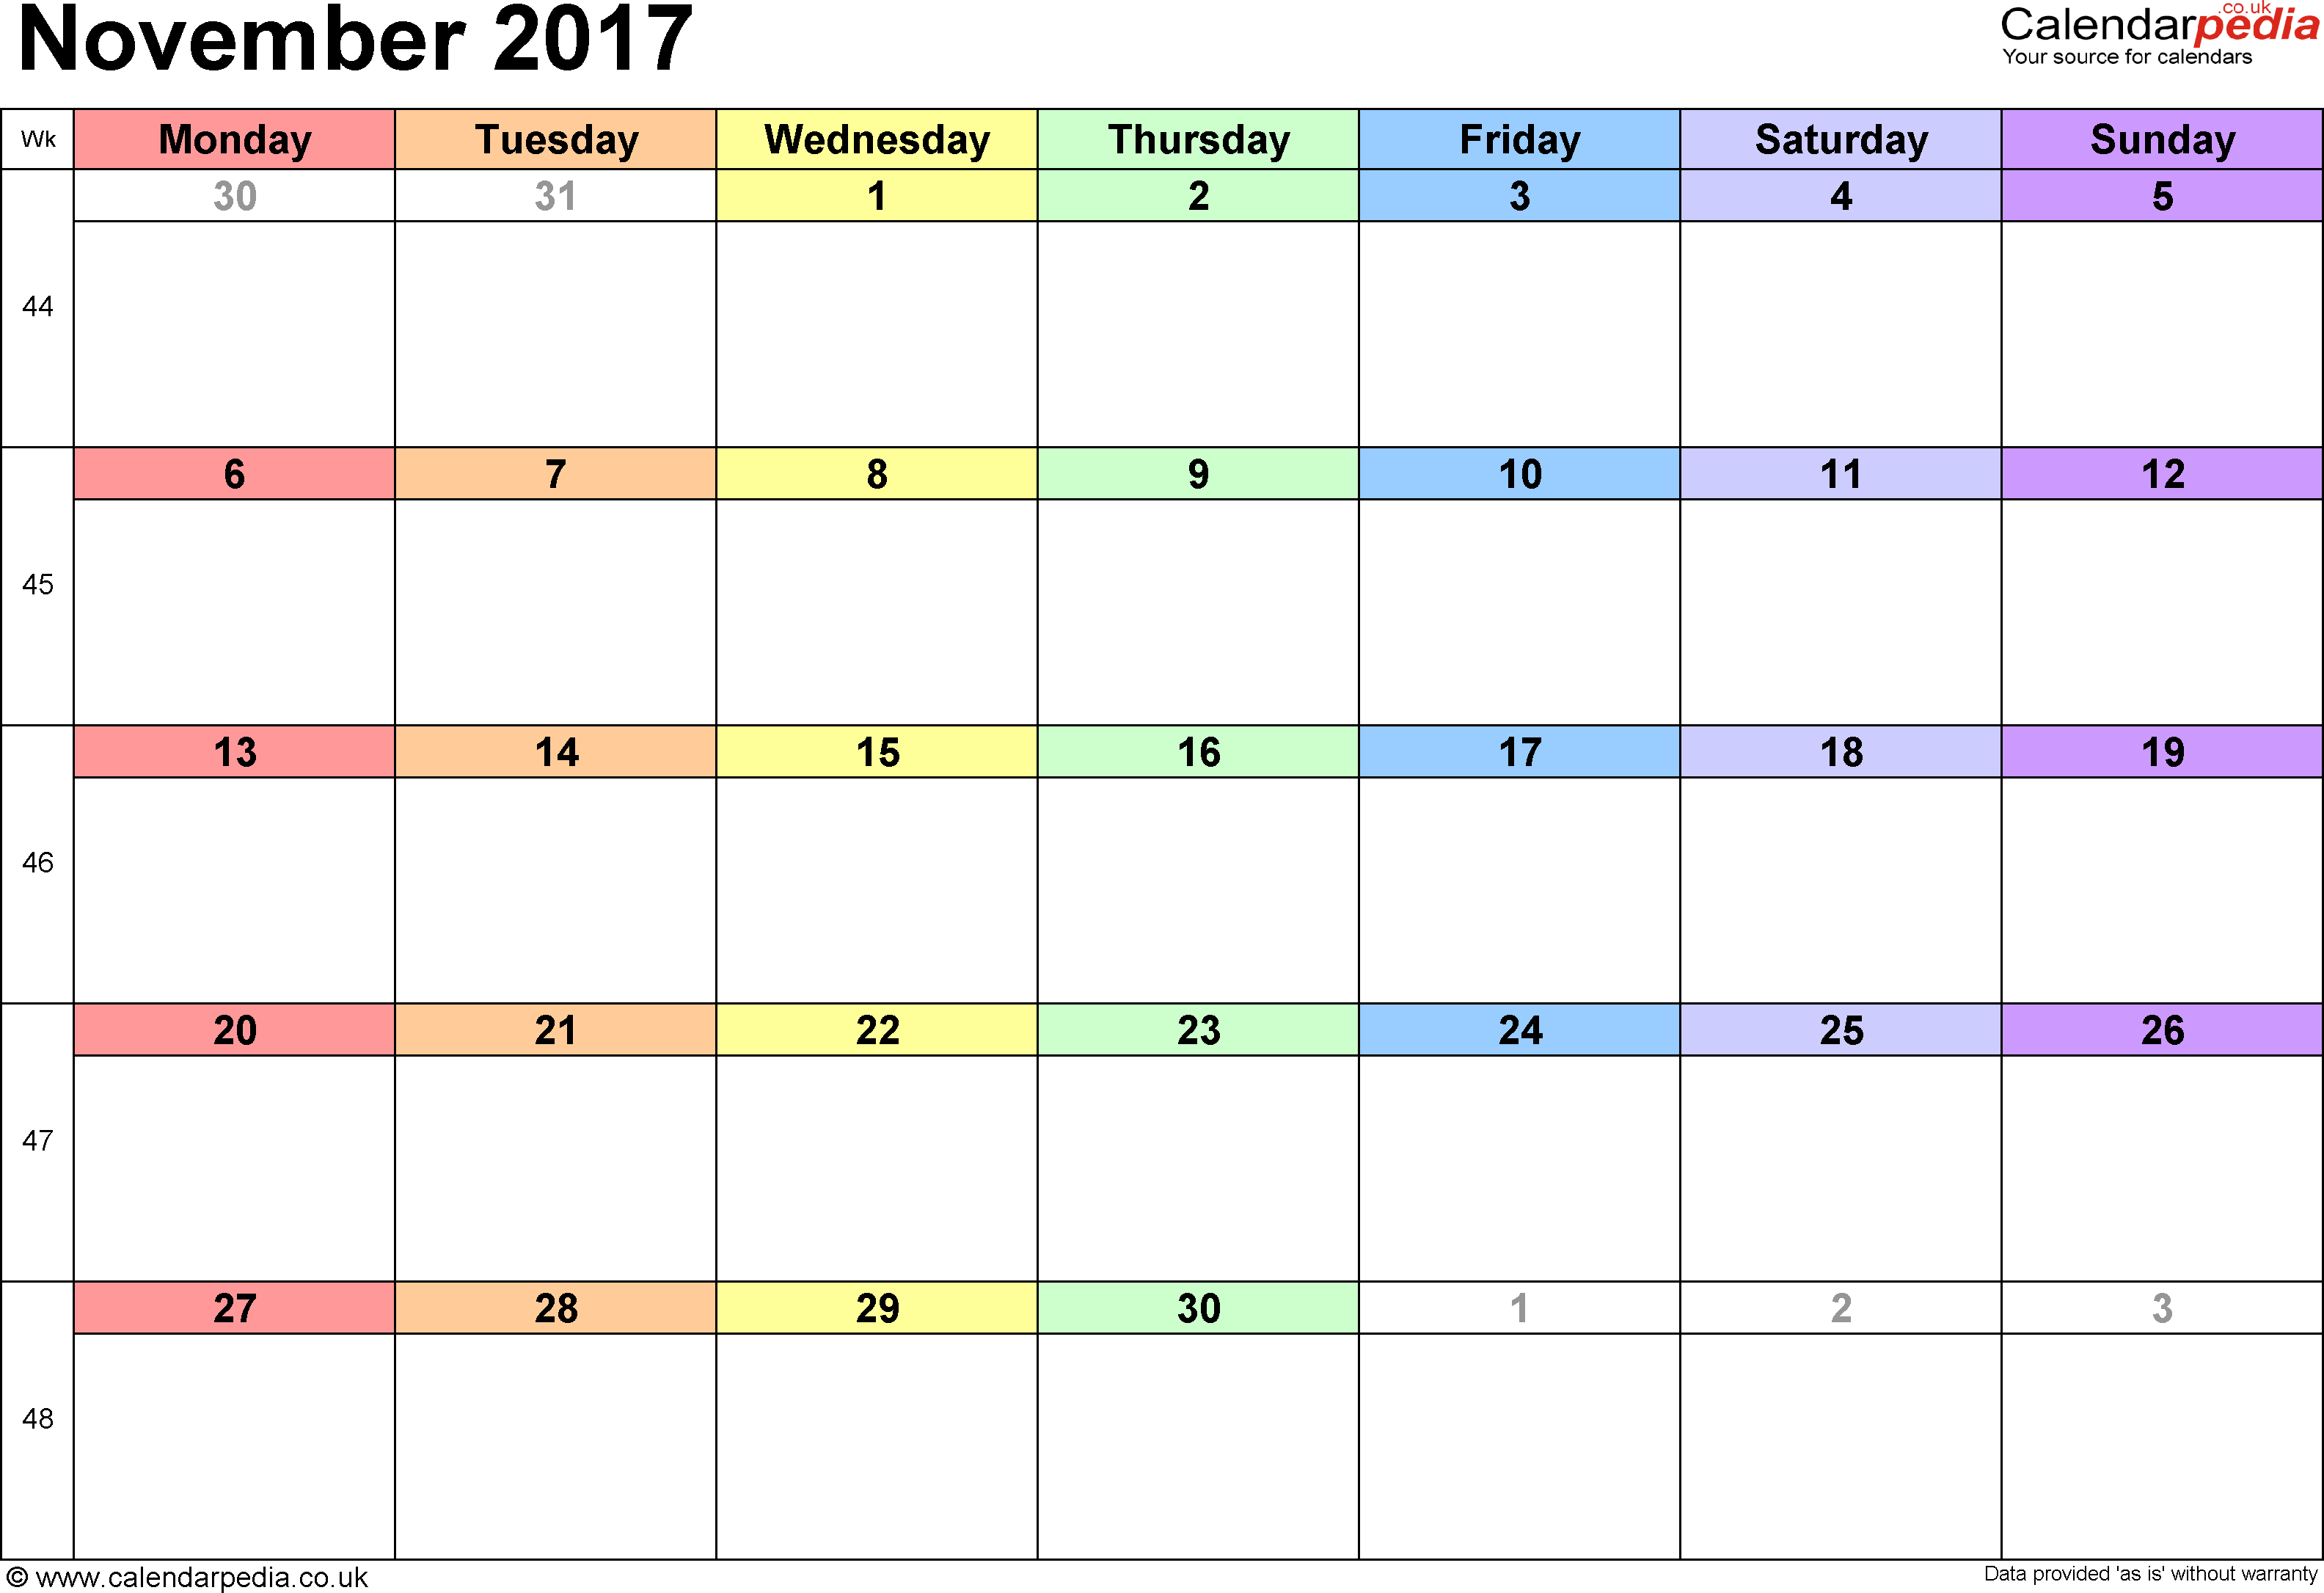 November 2017 Calendar Printable With Holidays | weekly calendar